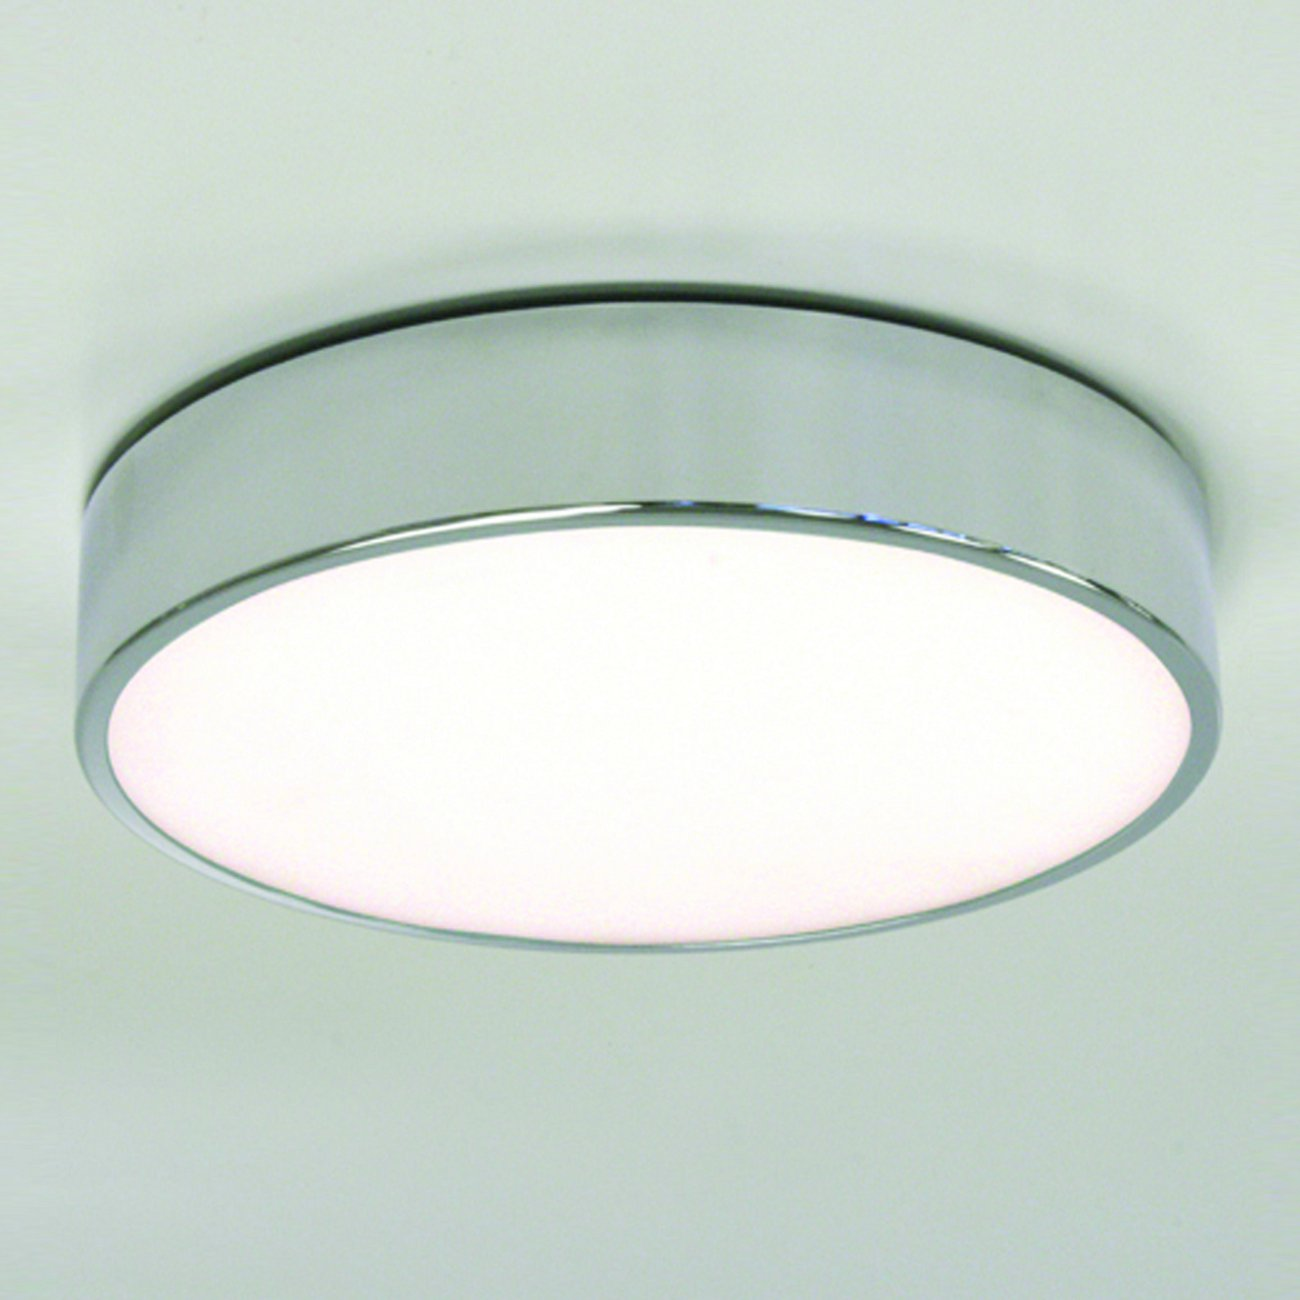 Design-Deckenlampe in Chrom mit satiniertem Glas MALLON